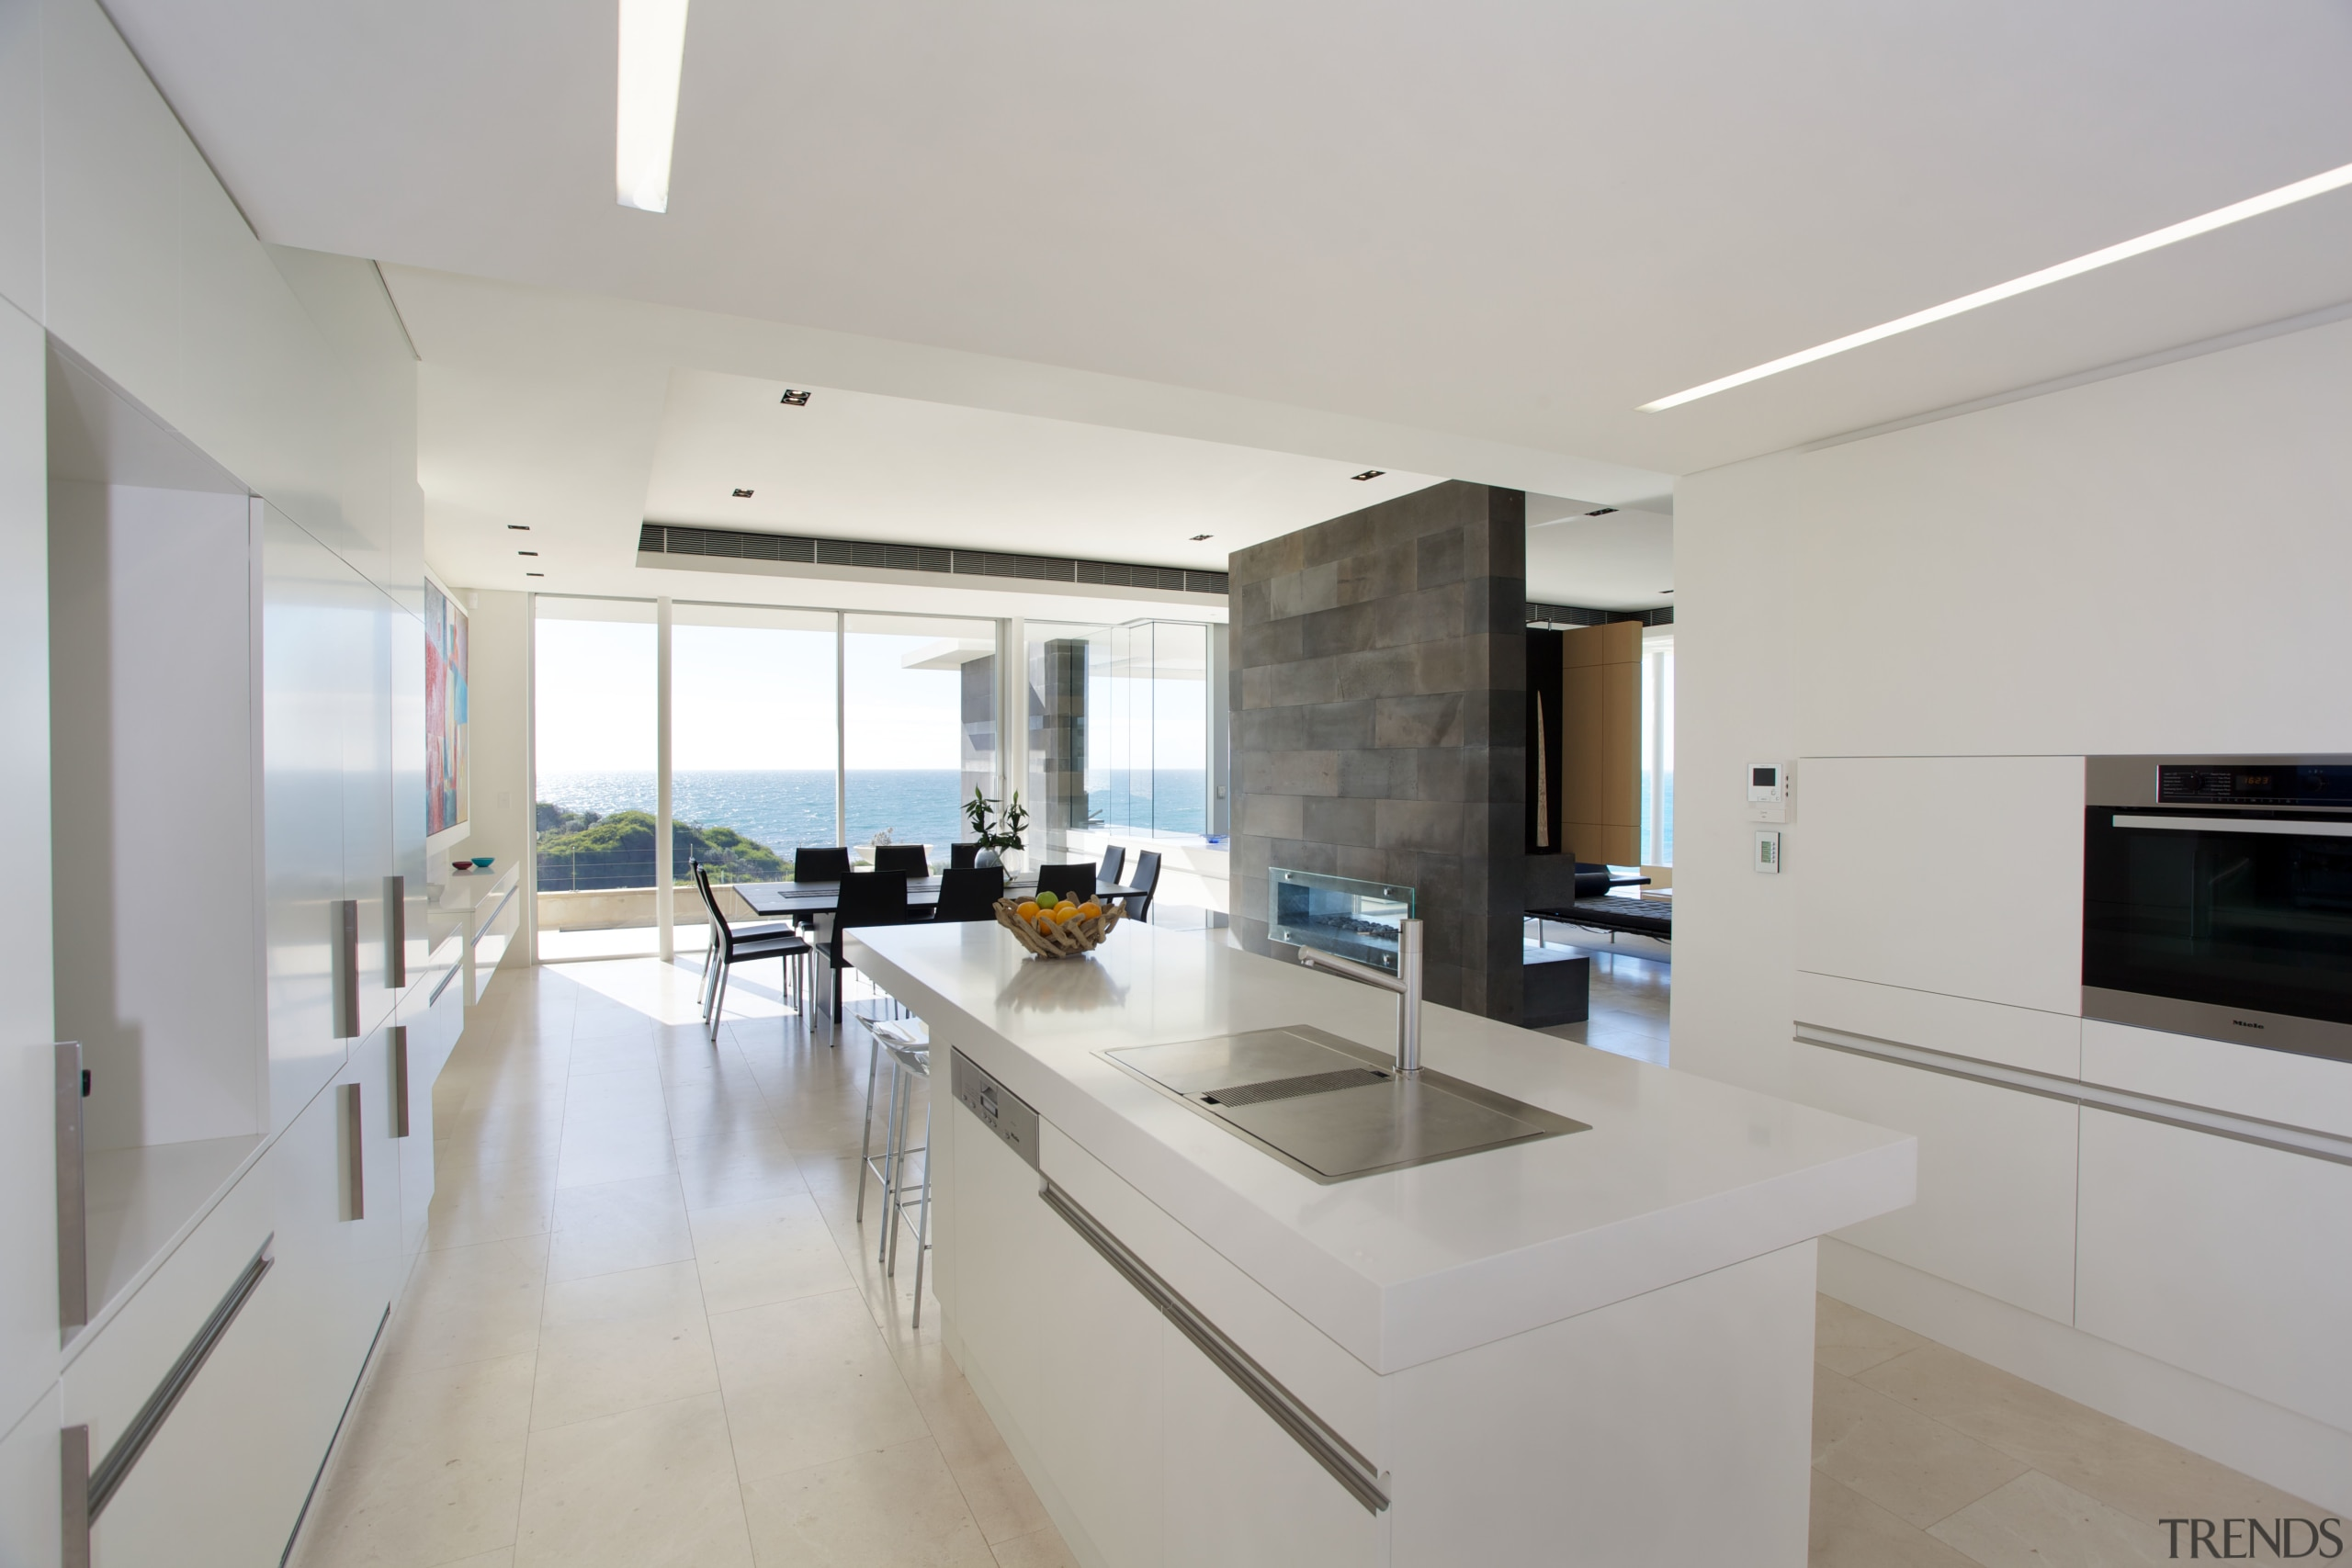 This all-white kitchen has been kept deliberately simple. apartment, architecture, countertop, house, interior design, kitchen, property, real estate, gray